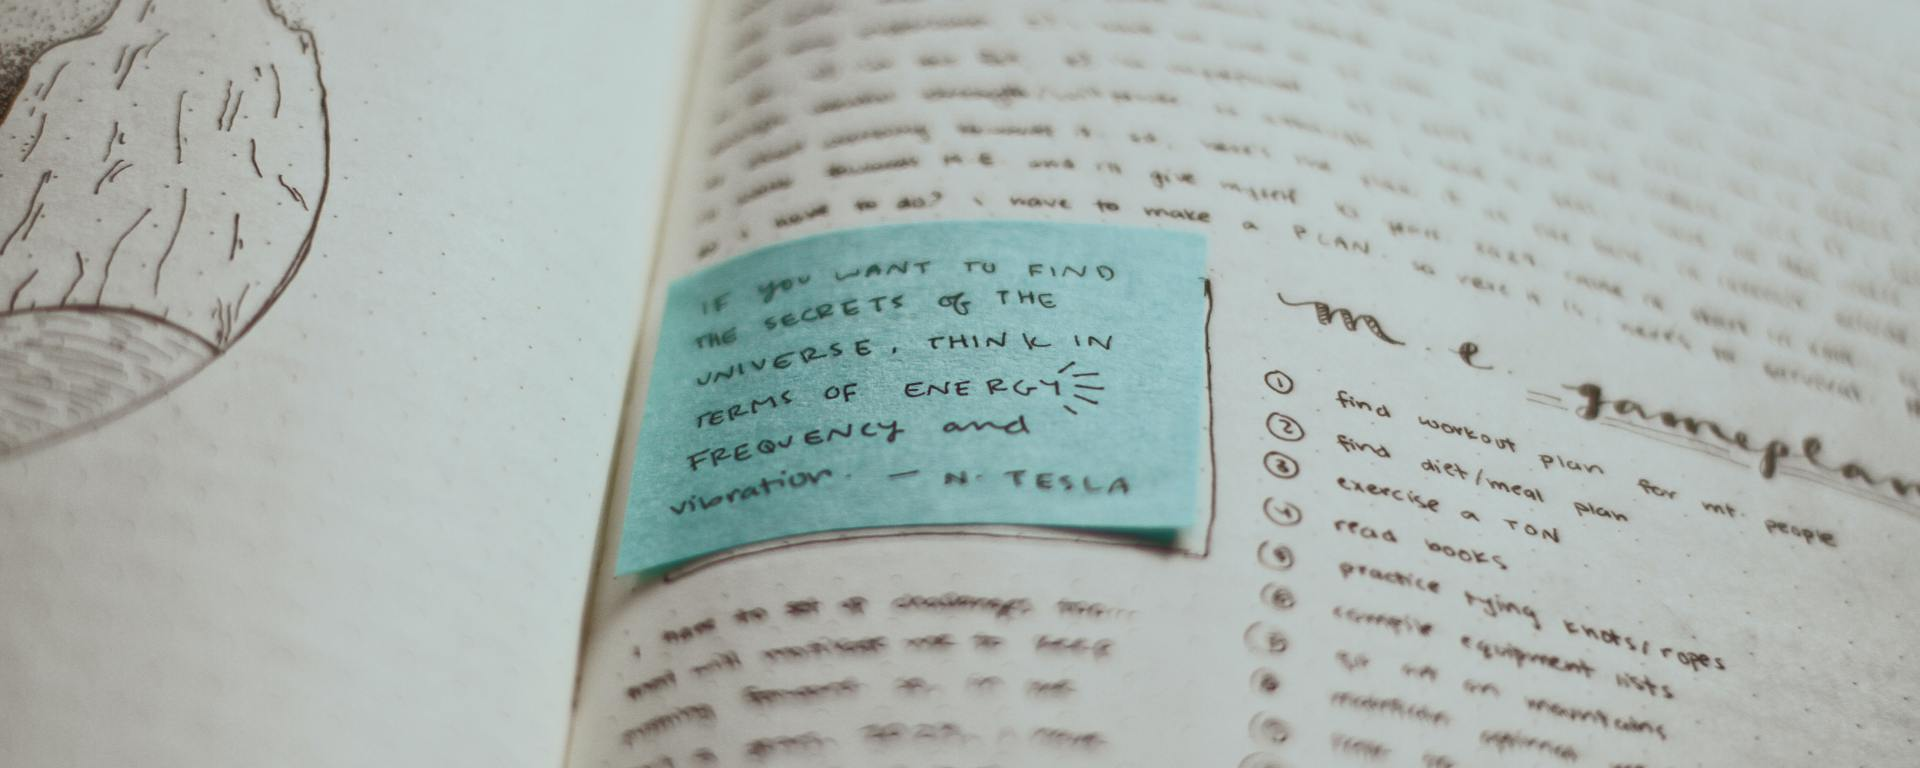 An image of a journal page with self-development notes.